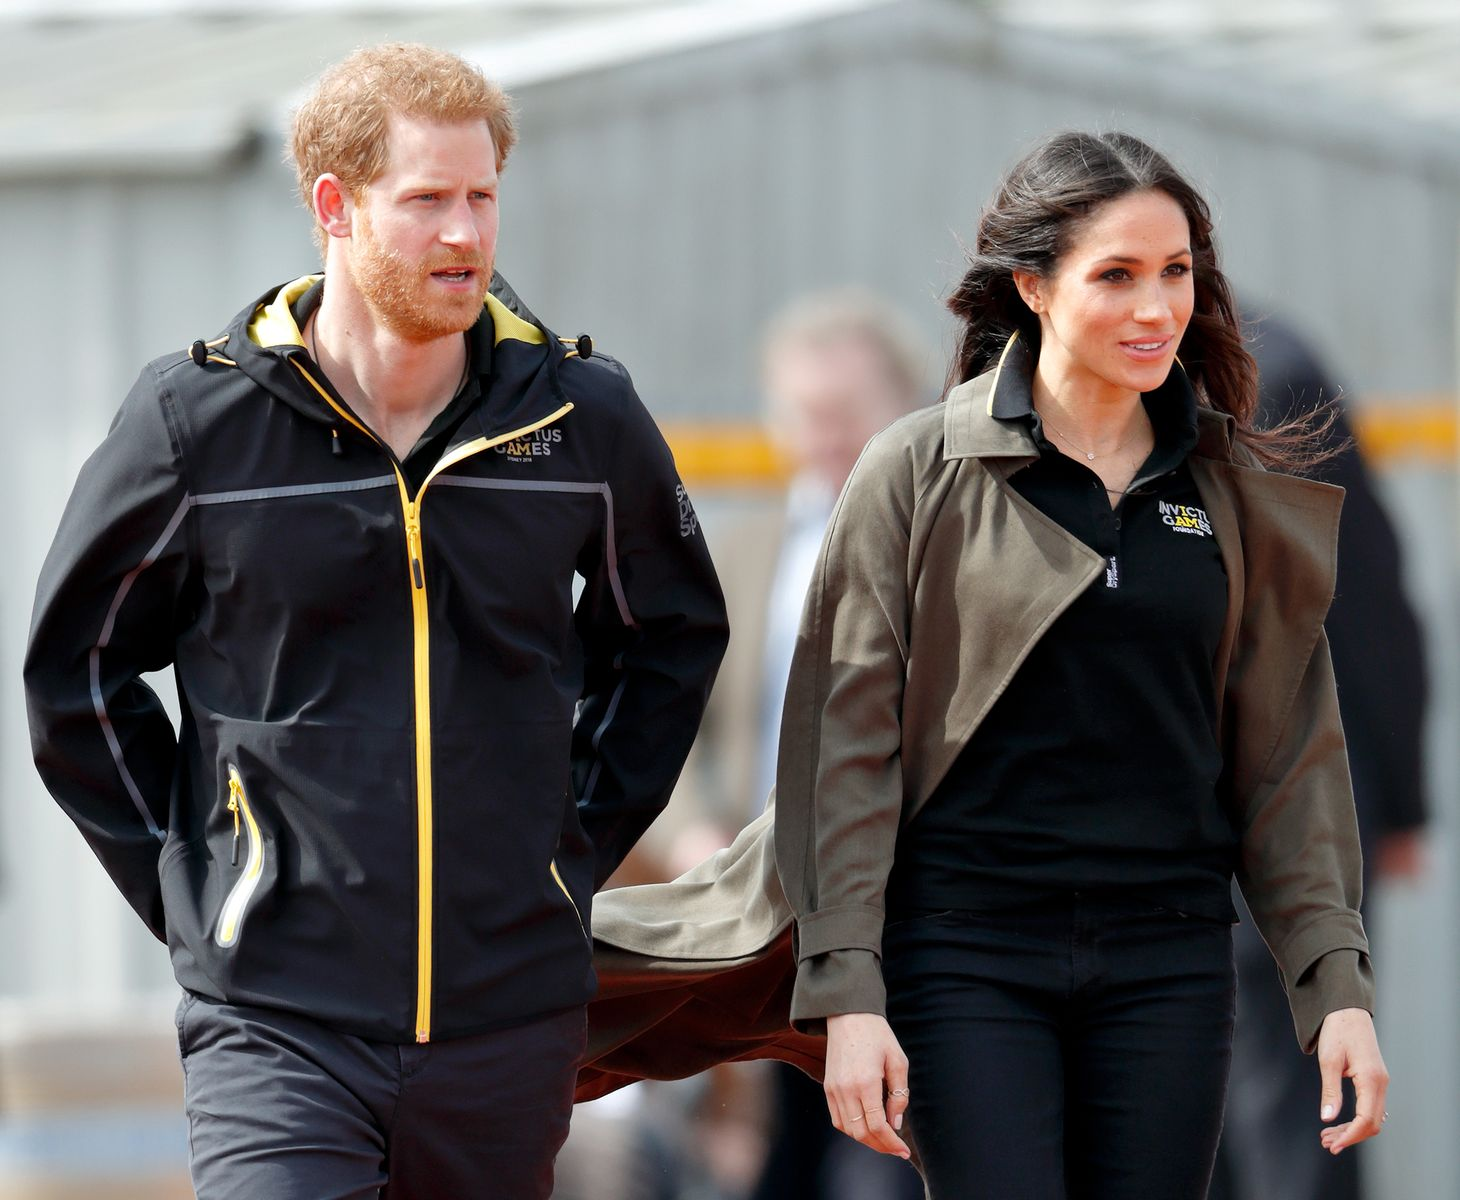 Prince Harry and Duchess Meghan at the UK Team Trials for the Invictus Games on April 6, 2018, in Bath, England | Photo: Max Mumby/Indigo/Getty Images